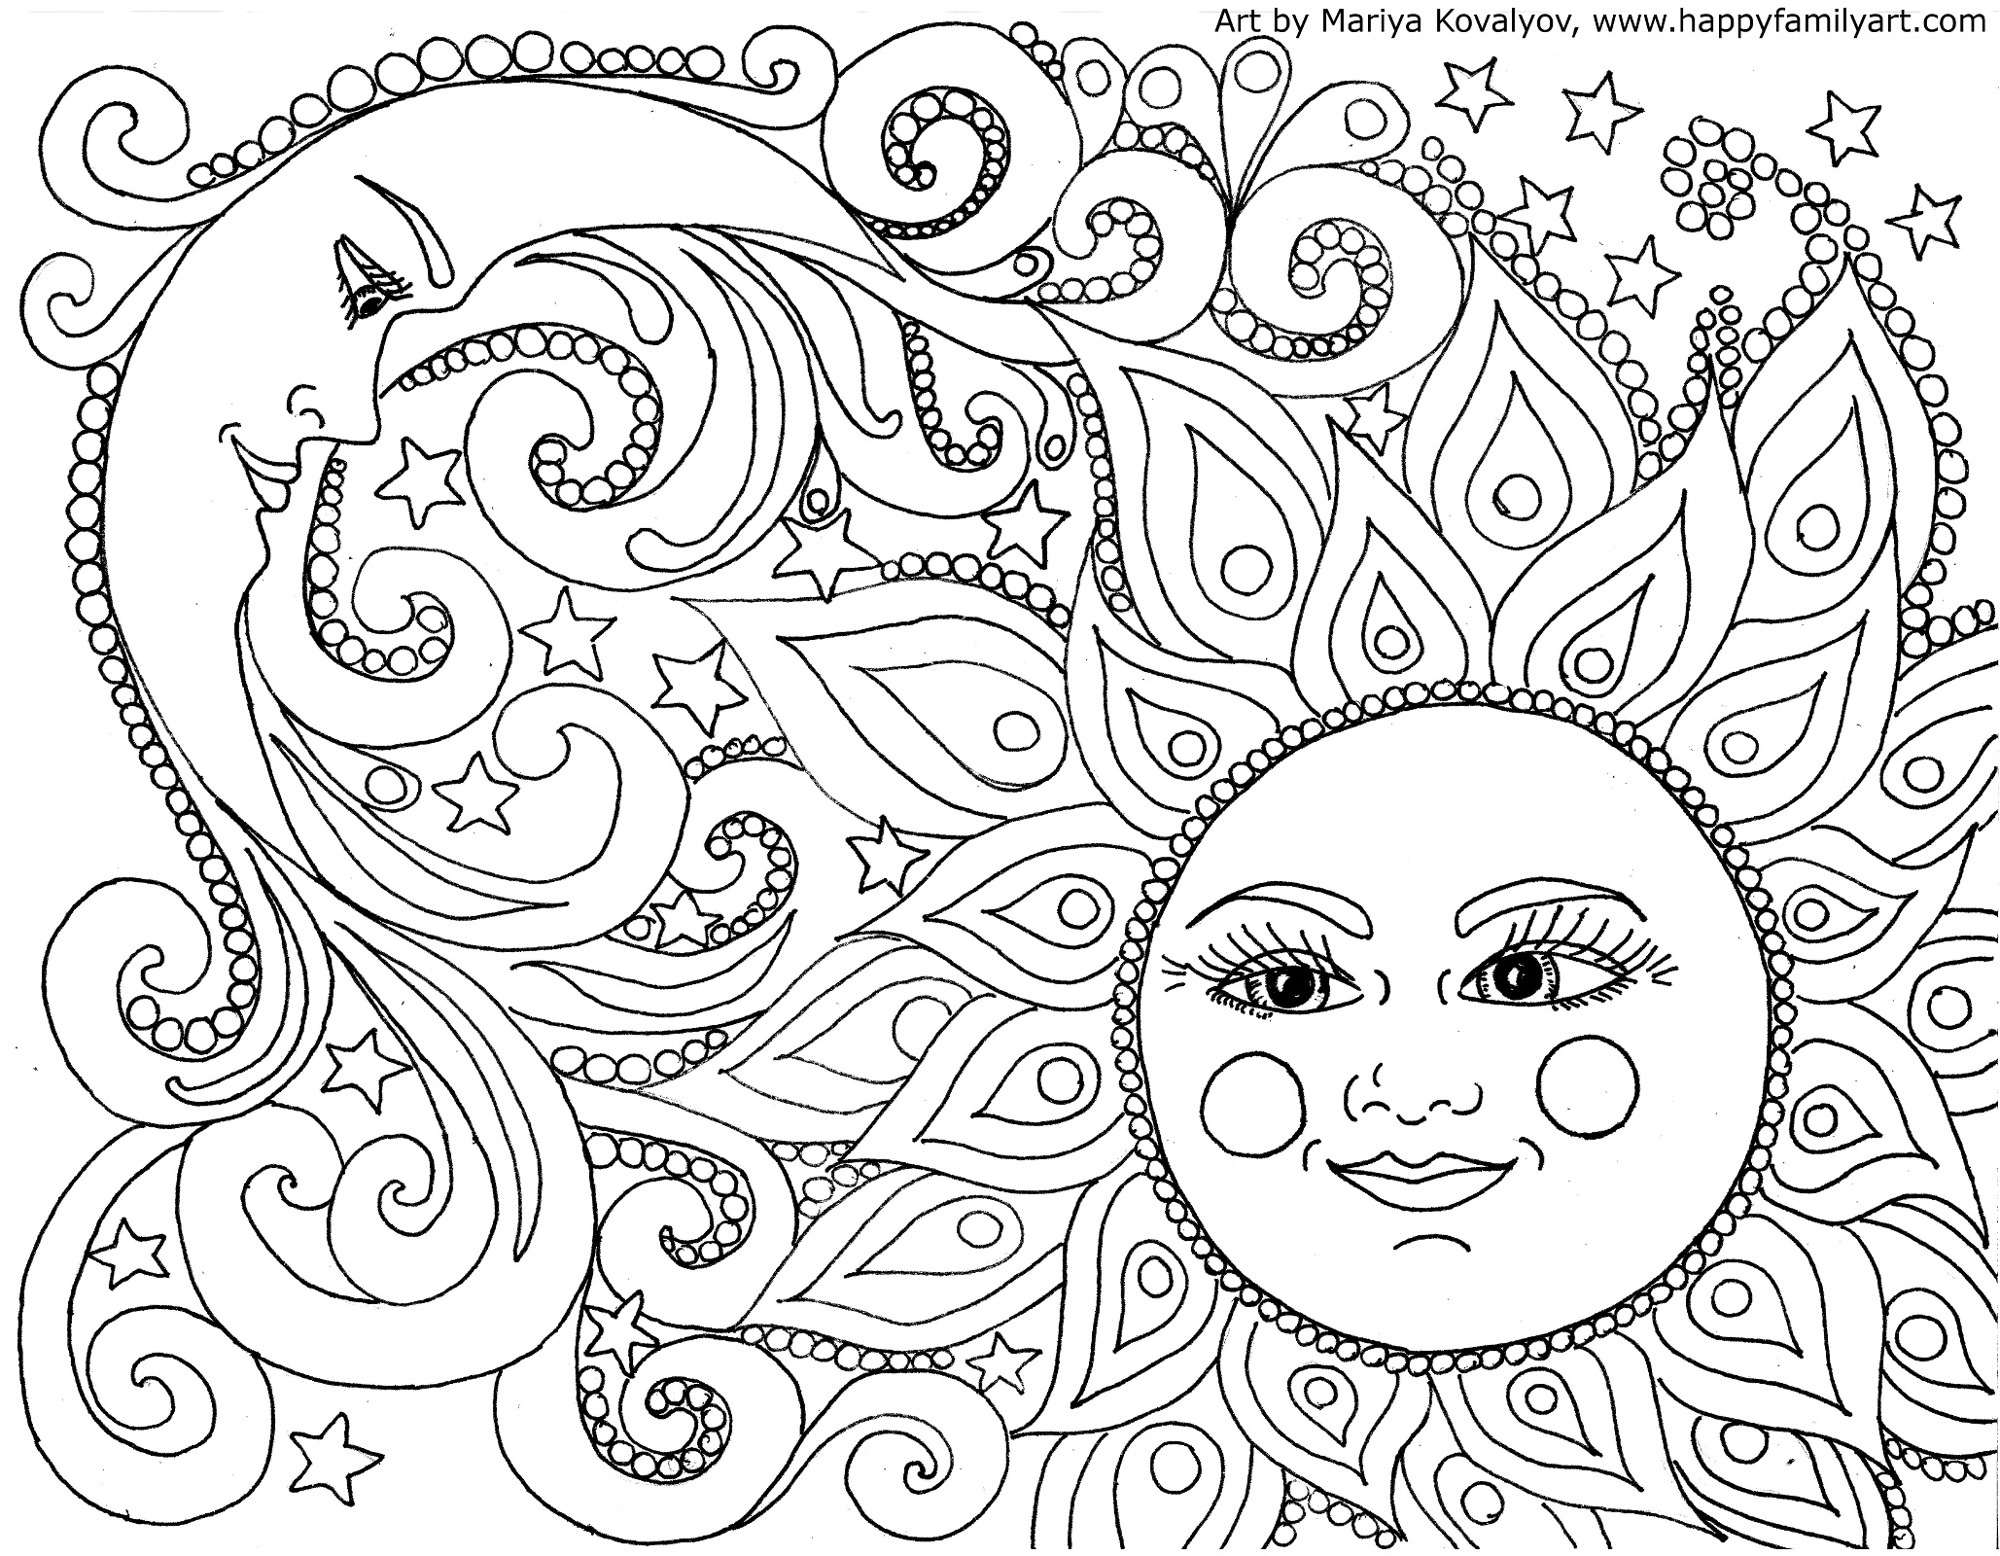 Moon coloring pages to download and print for free